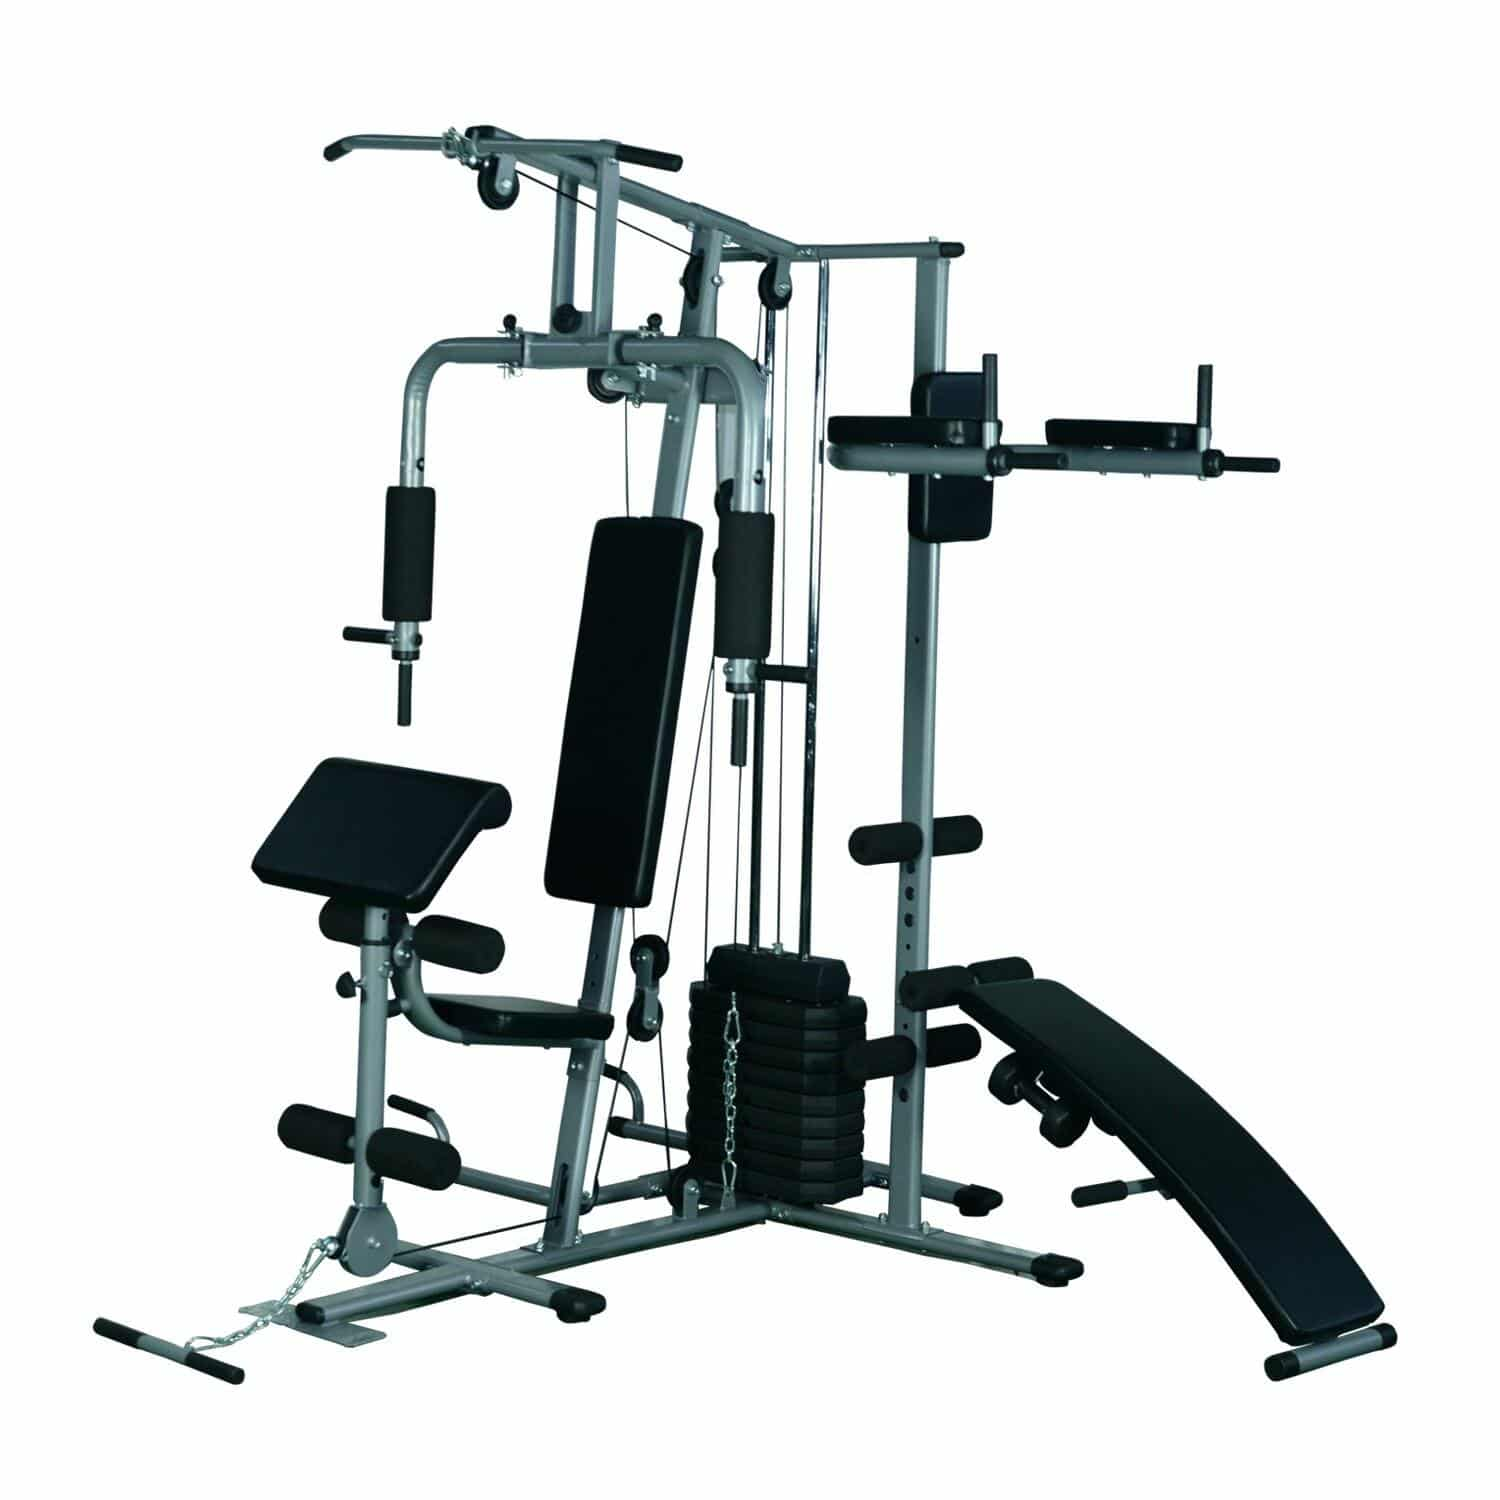 equipment gym fitness guide ultimate machine station selecting exercise workout training gyms strength stack